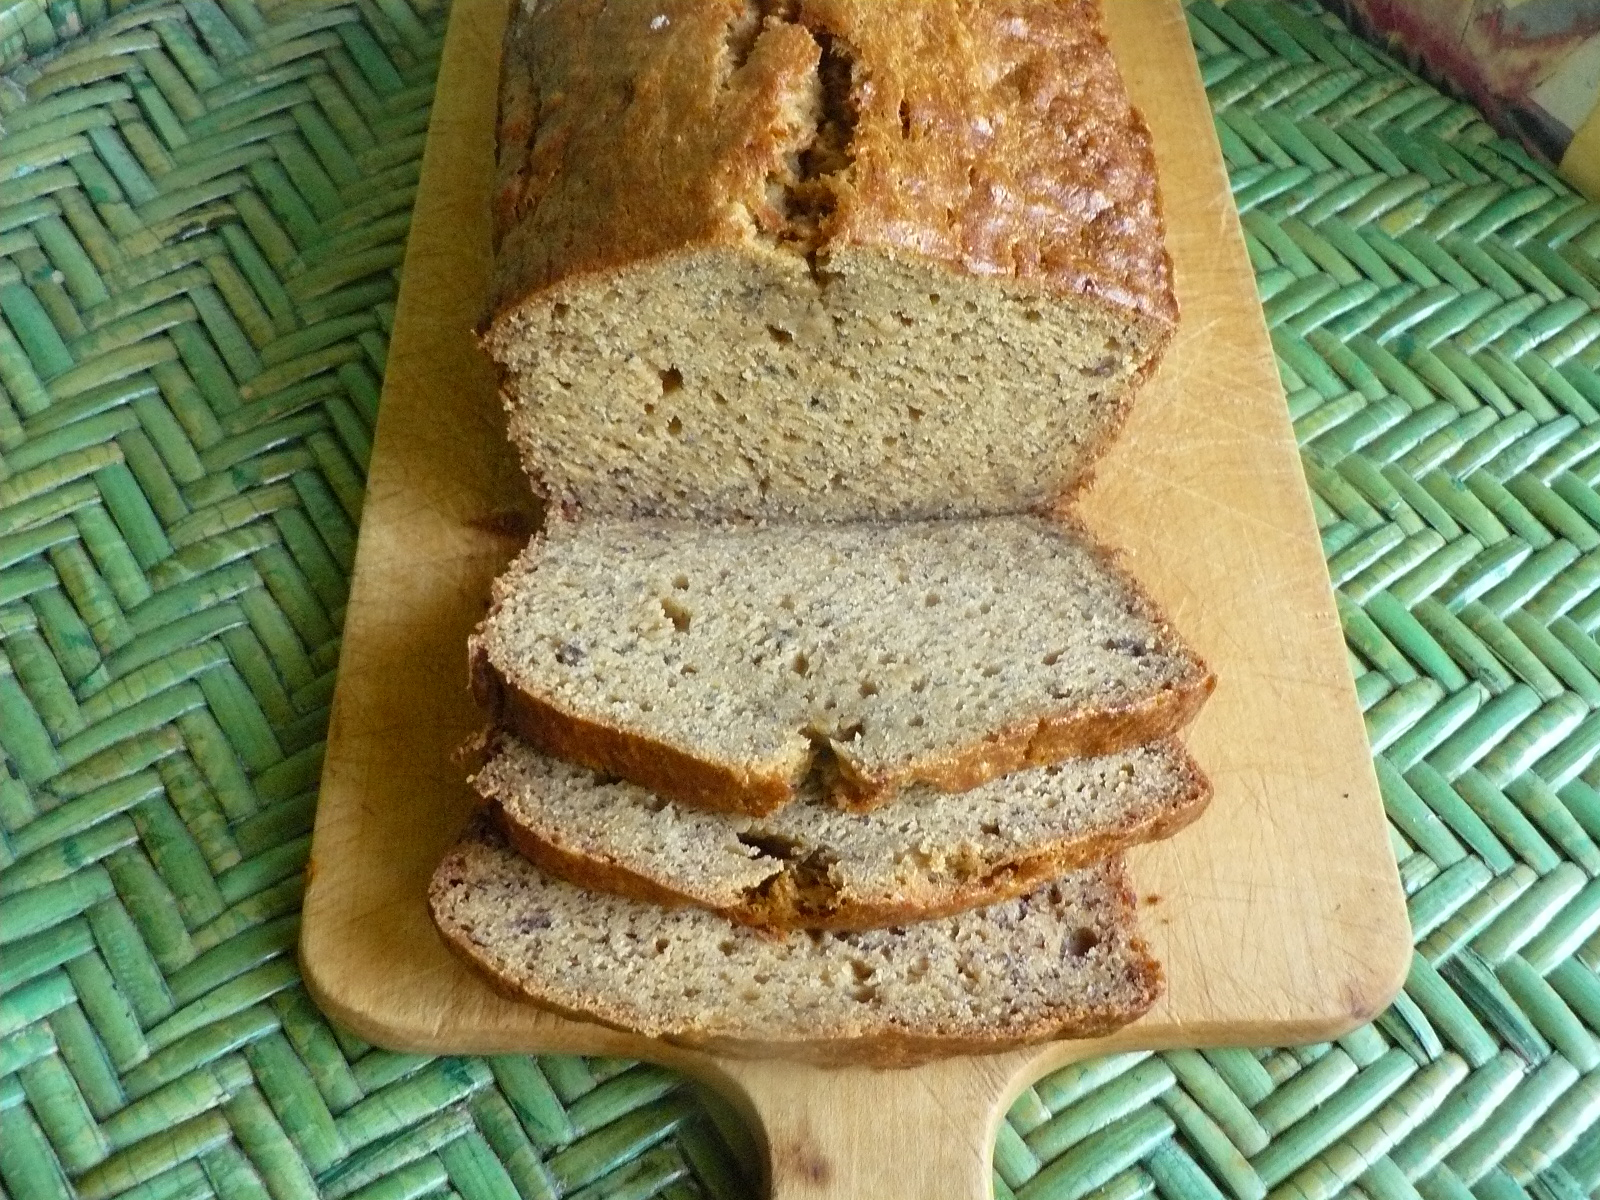 top-down view of a loaf of banana bread on a cutting board, with the first three slices cut off an end